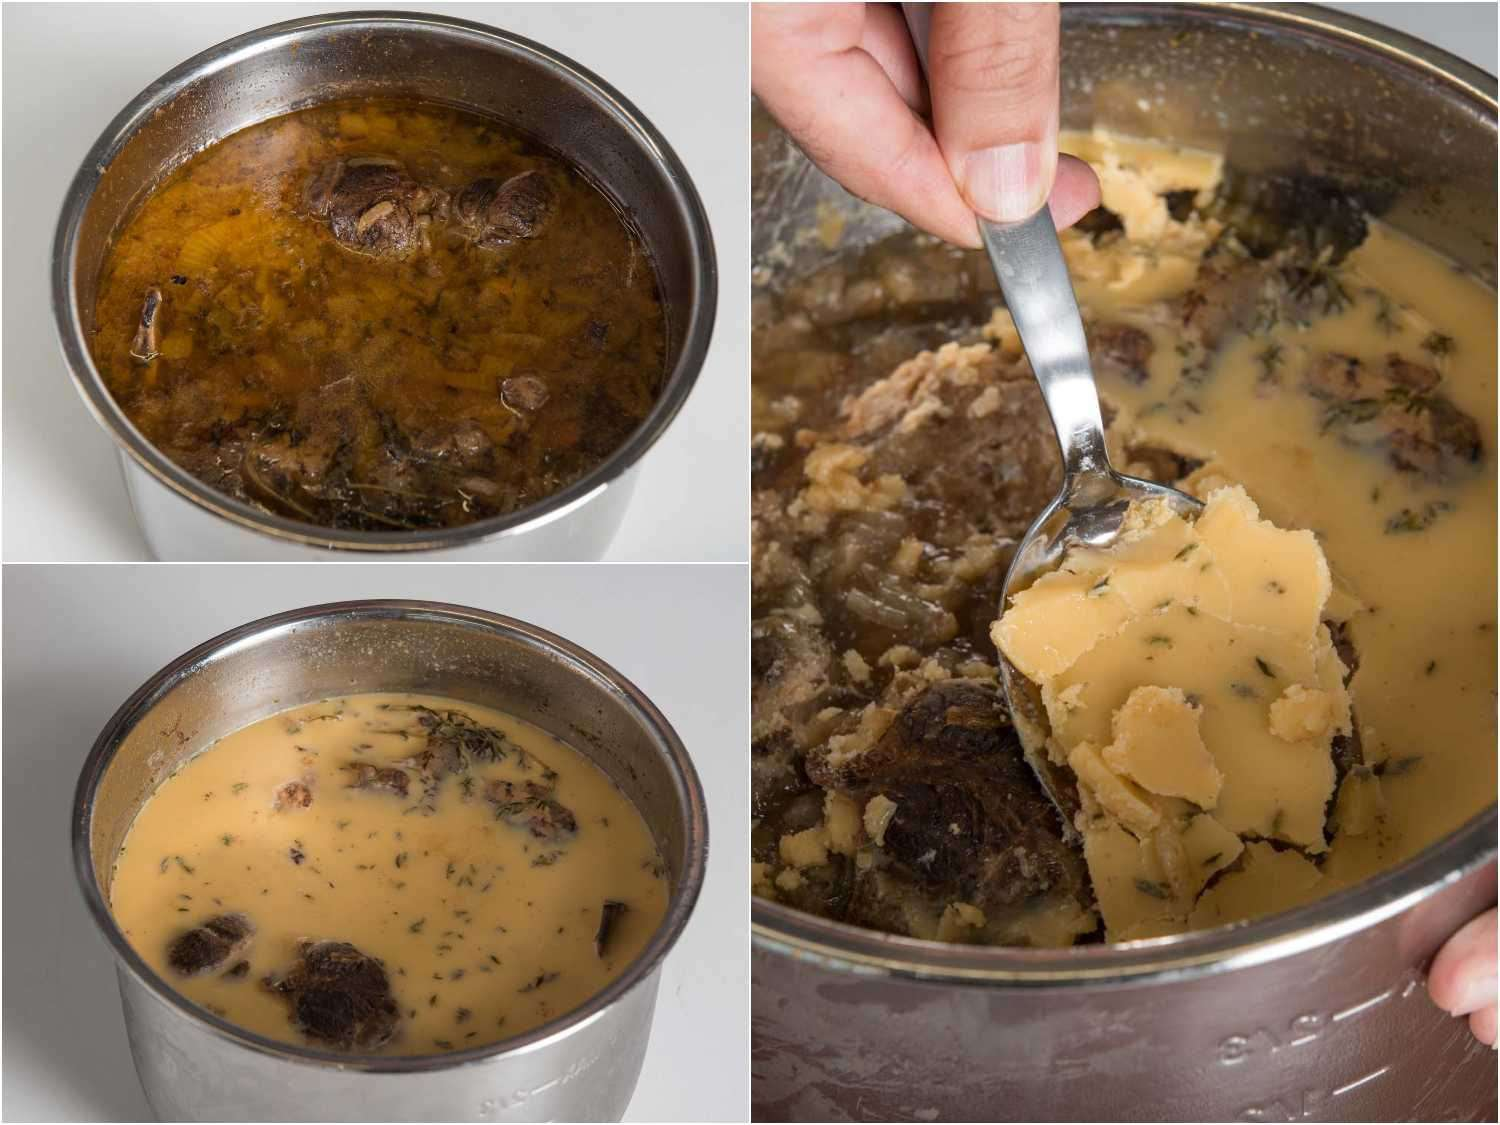 Scraping the congealed fat off the surface of cold beef stock